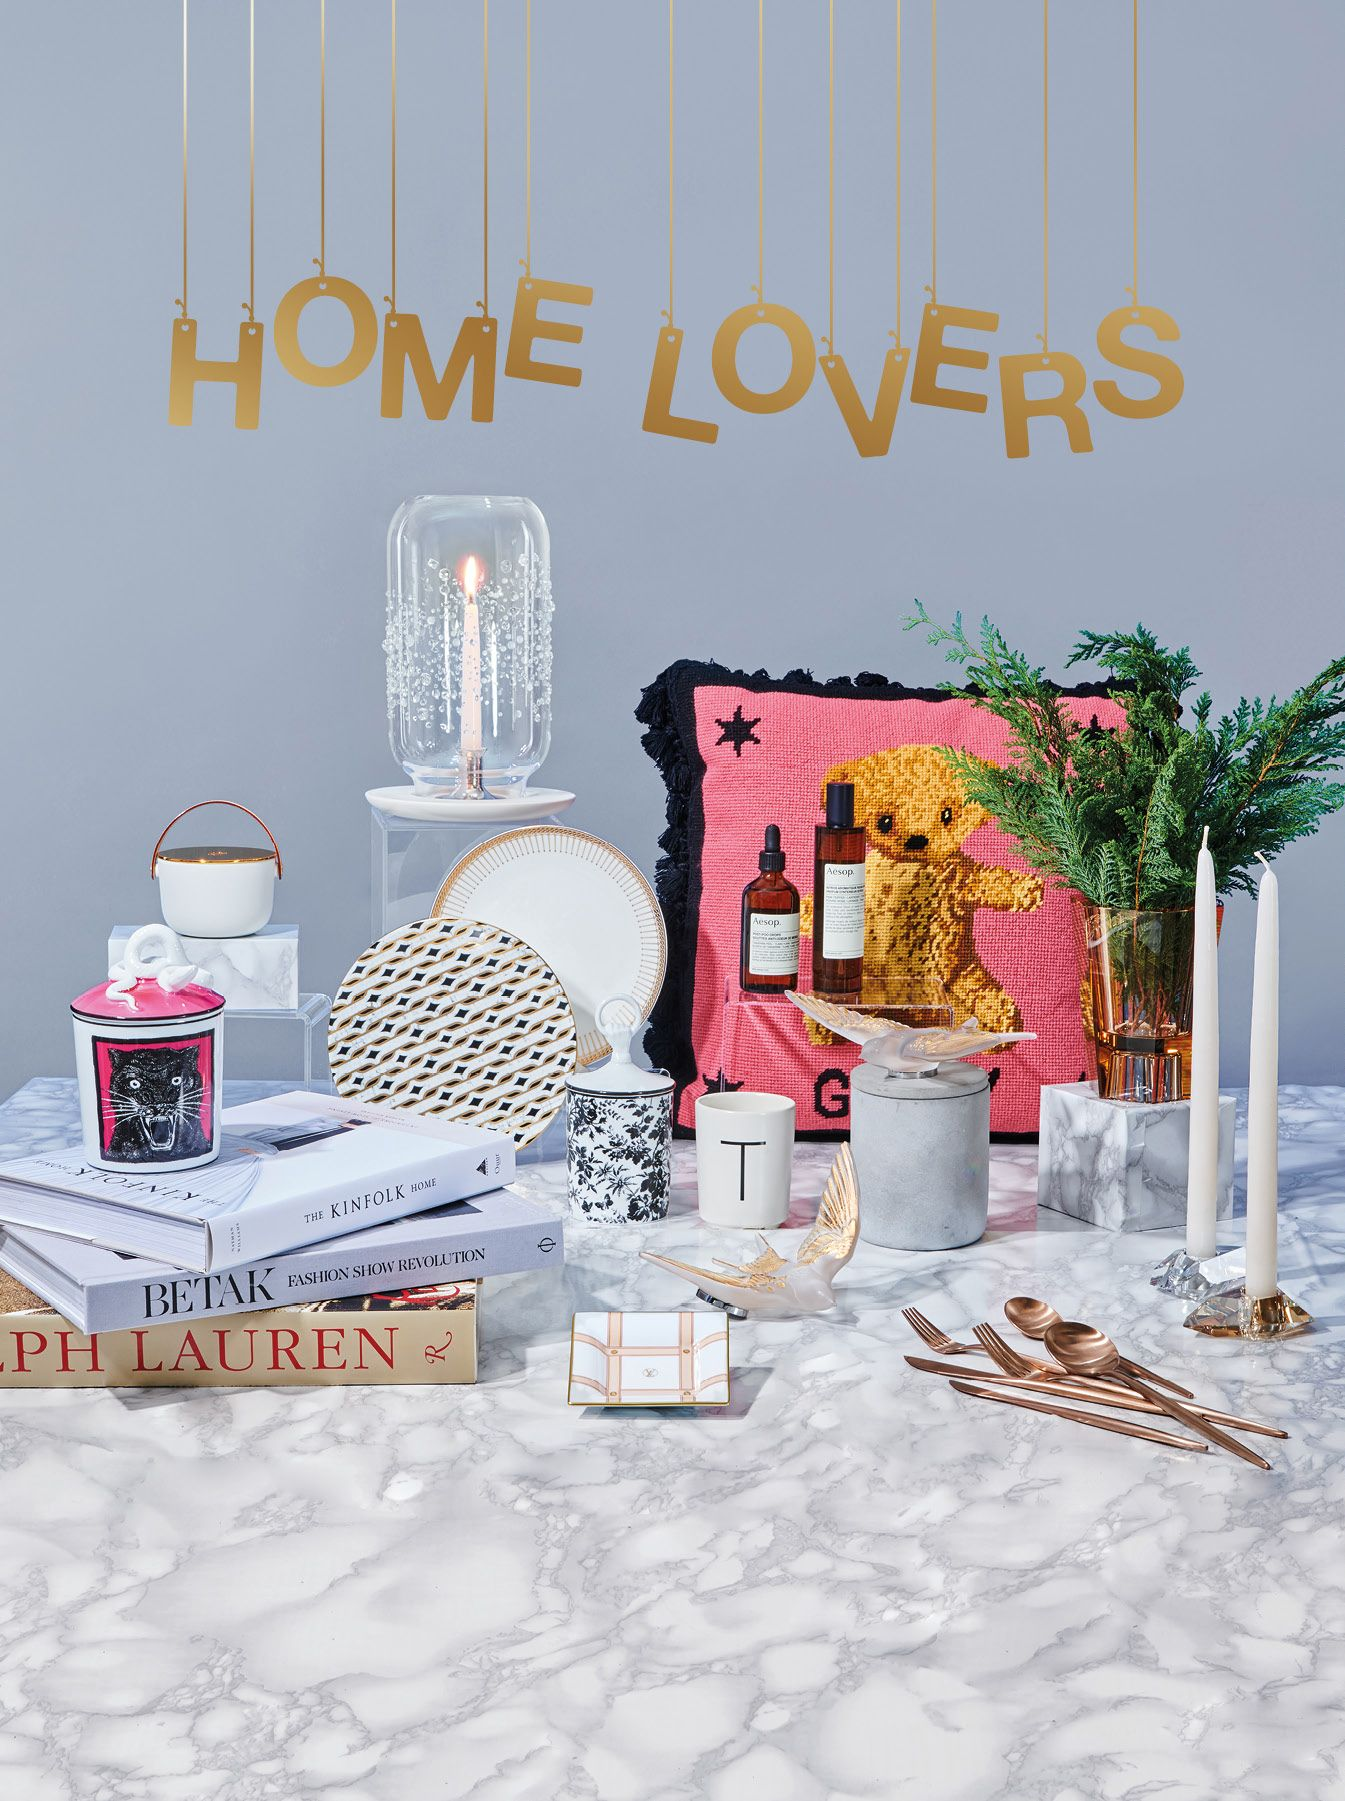 20 Gorgeous Home Decor Christmas Gift Ideas | Hong Kong Tatler